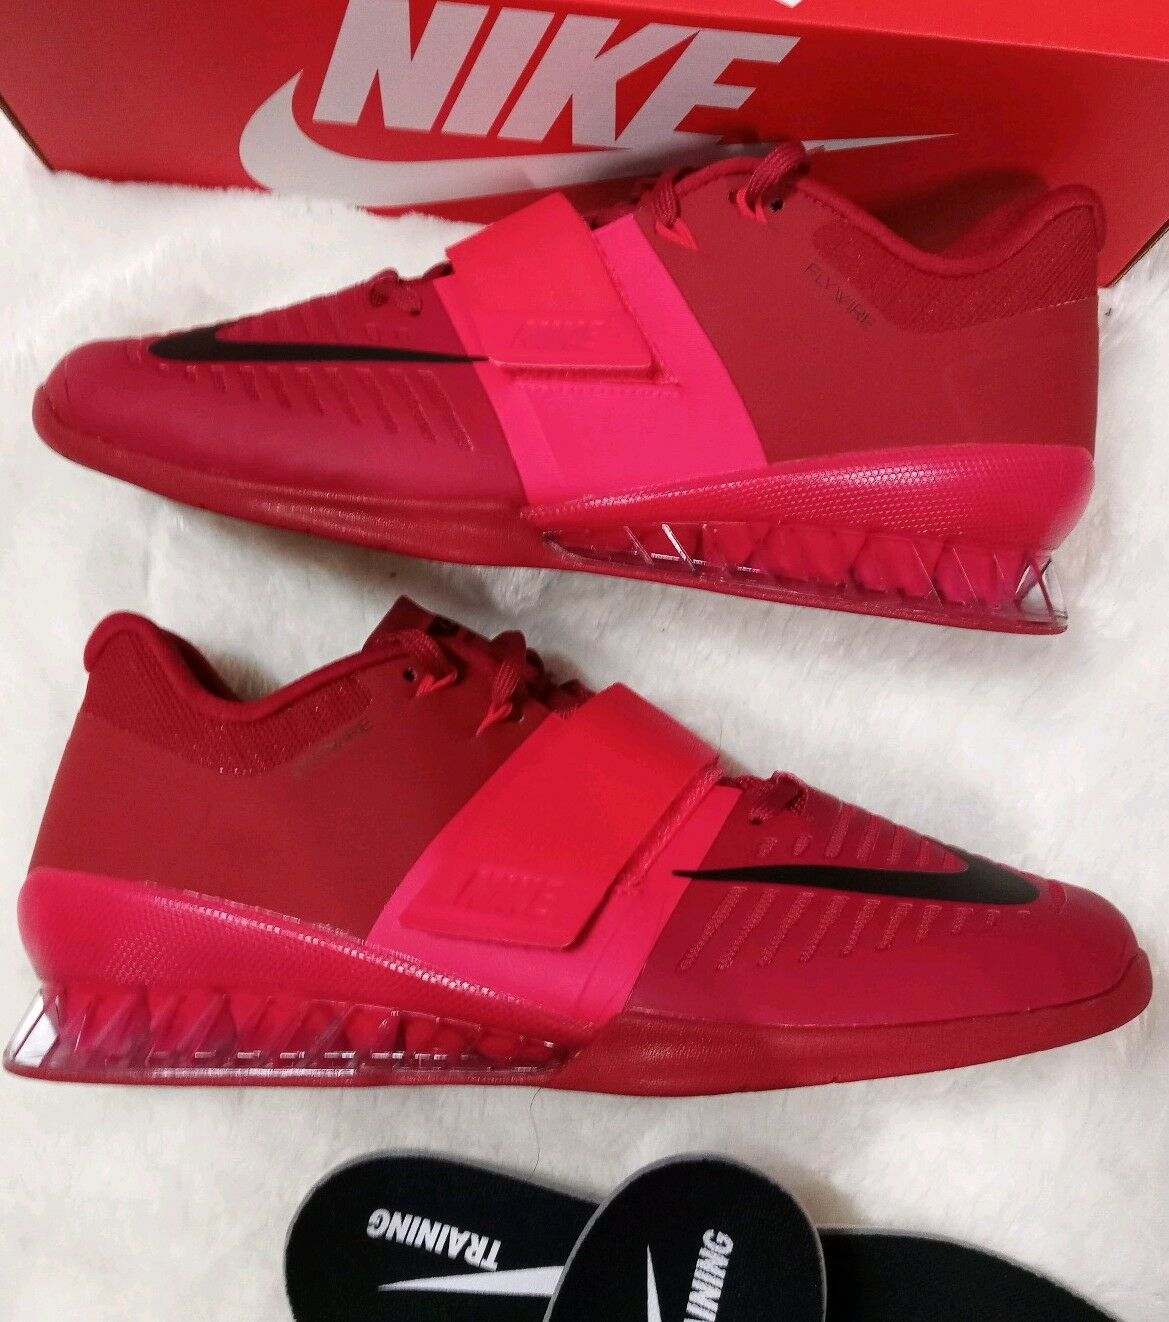 11.5 Siren MEN'S Nike Romaleos 3 Siren 11.5 Red Training Weightlifting GYM Shoes 852933 601 1466ff